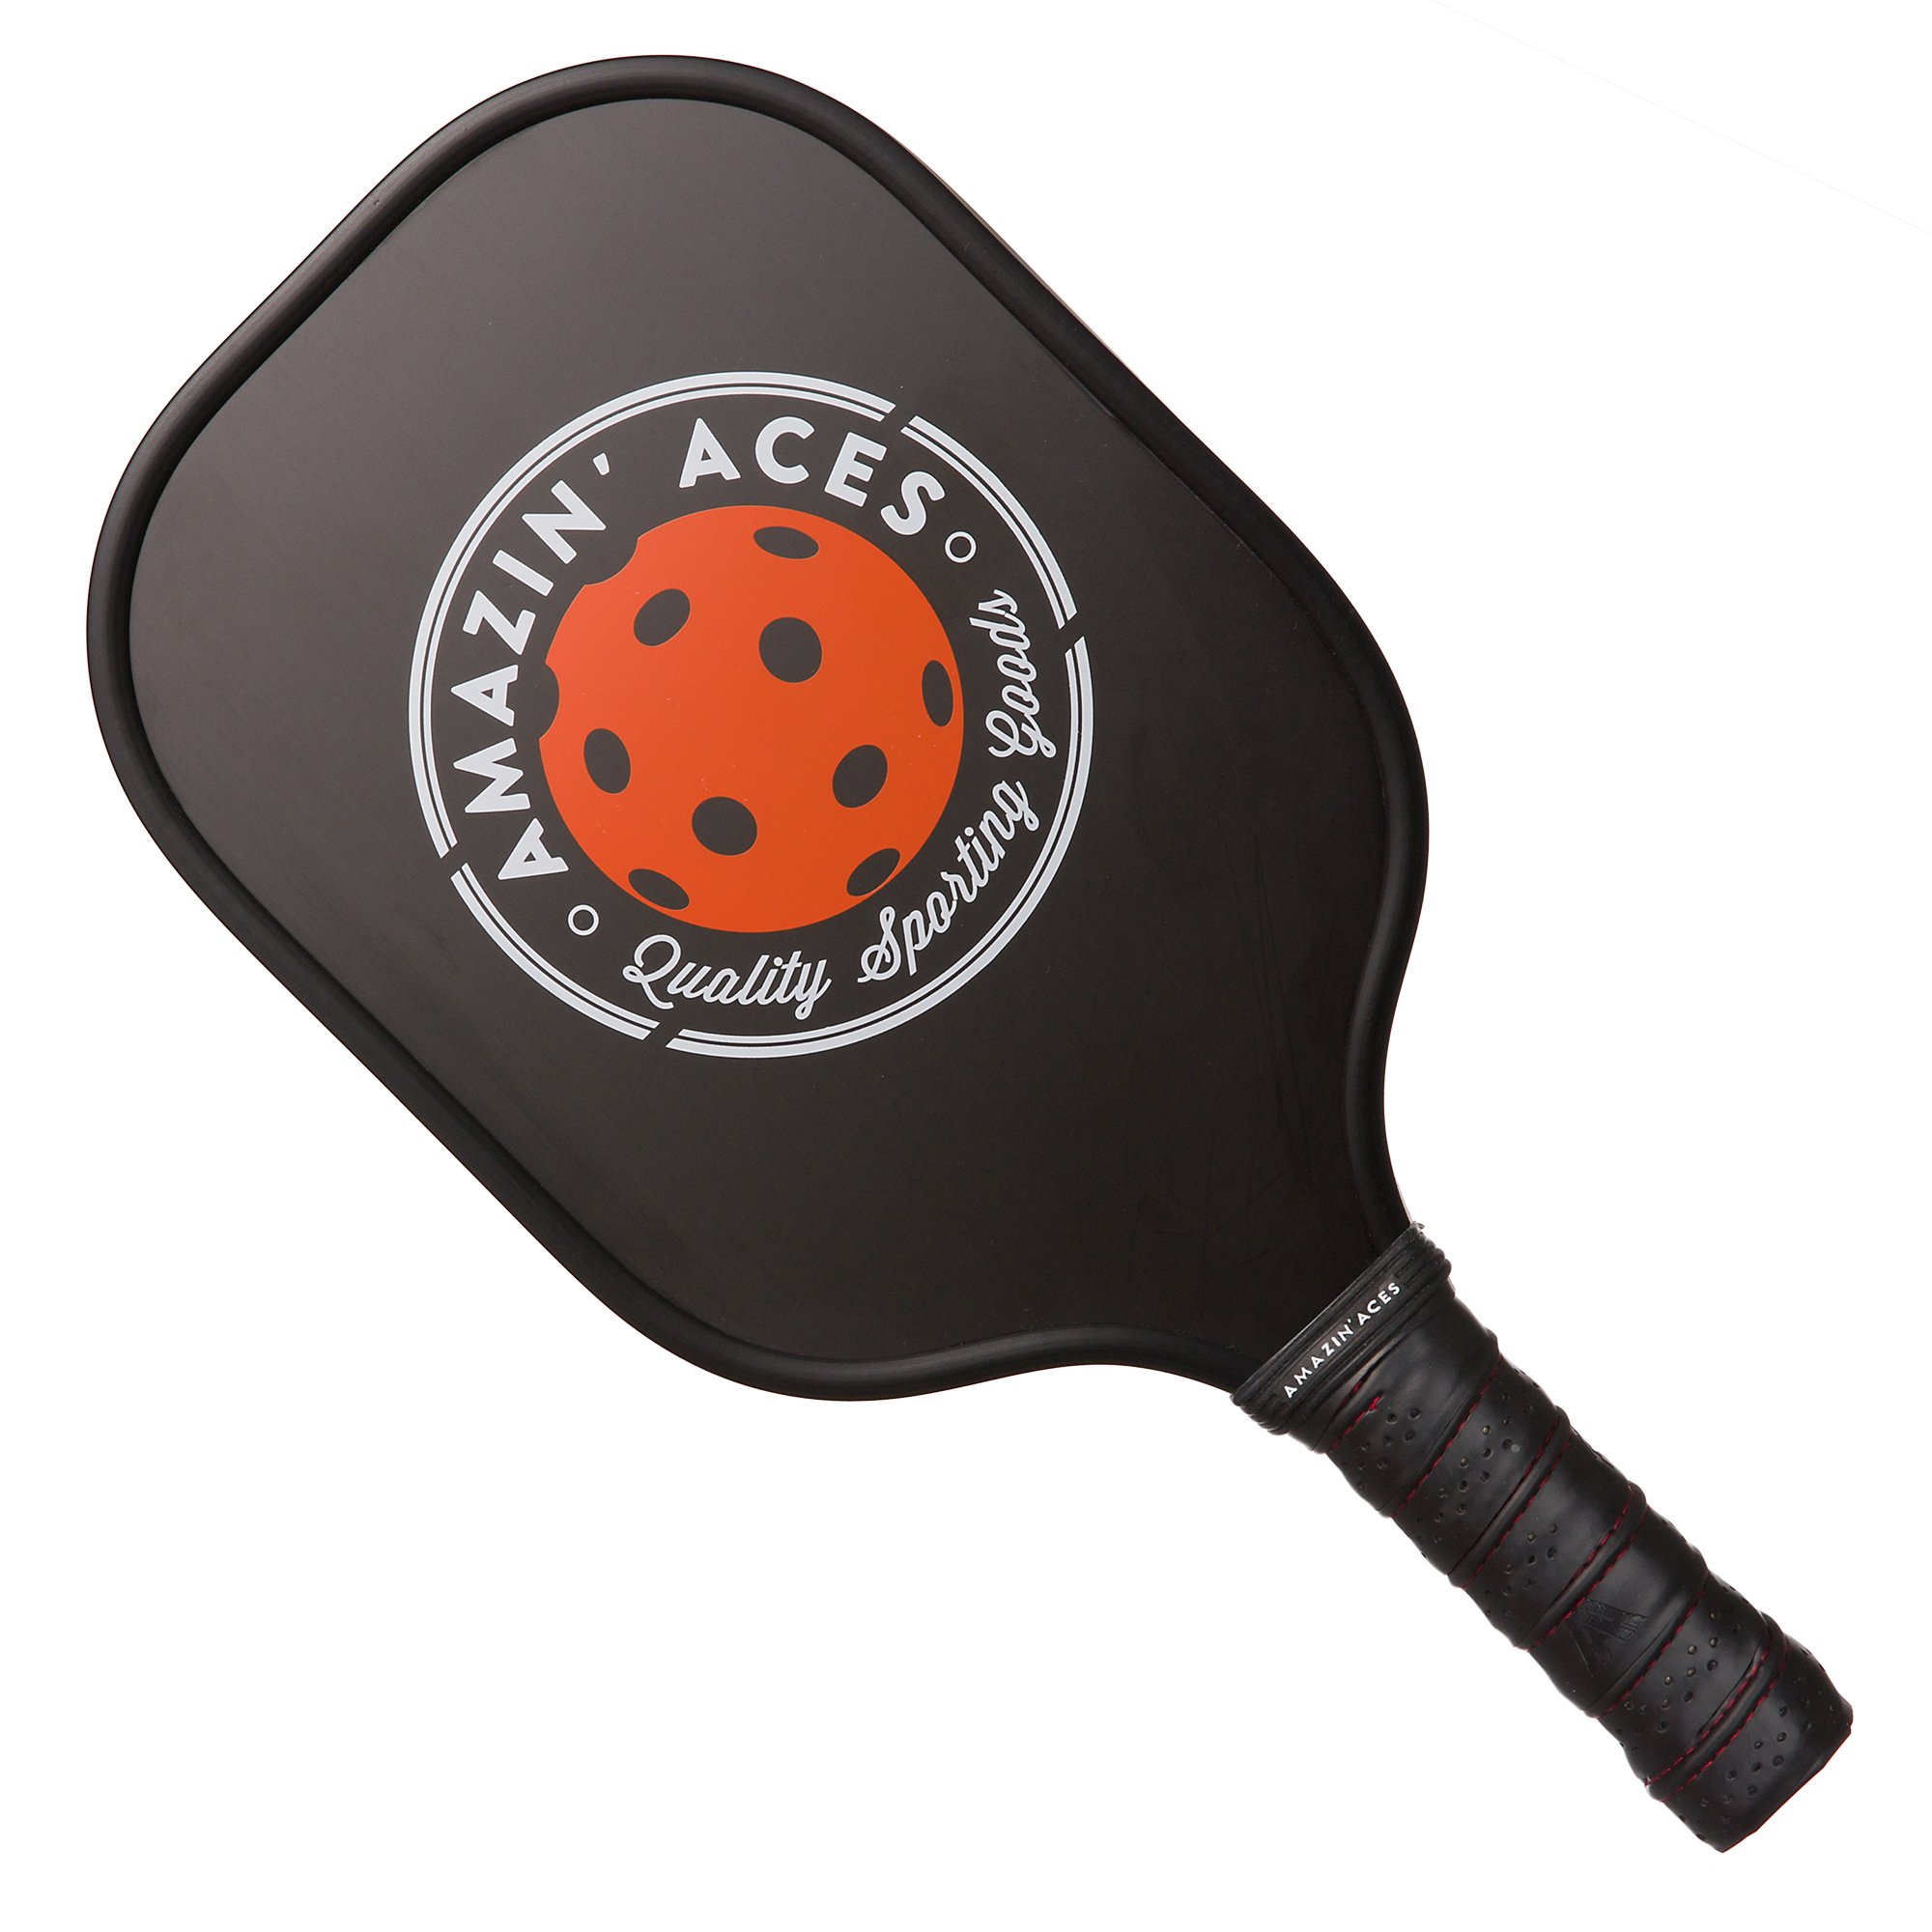 Amazin' Aces Pickleball Paddle Set | Pickleball Set Includes Two Graphite Pickleball Paddles + Four Balls + One Mesh Carry Bag | Premium Rackets Graphite Face & Polymer Honeycomb Core (Black Single) by Amazin' Aces